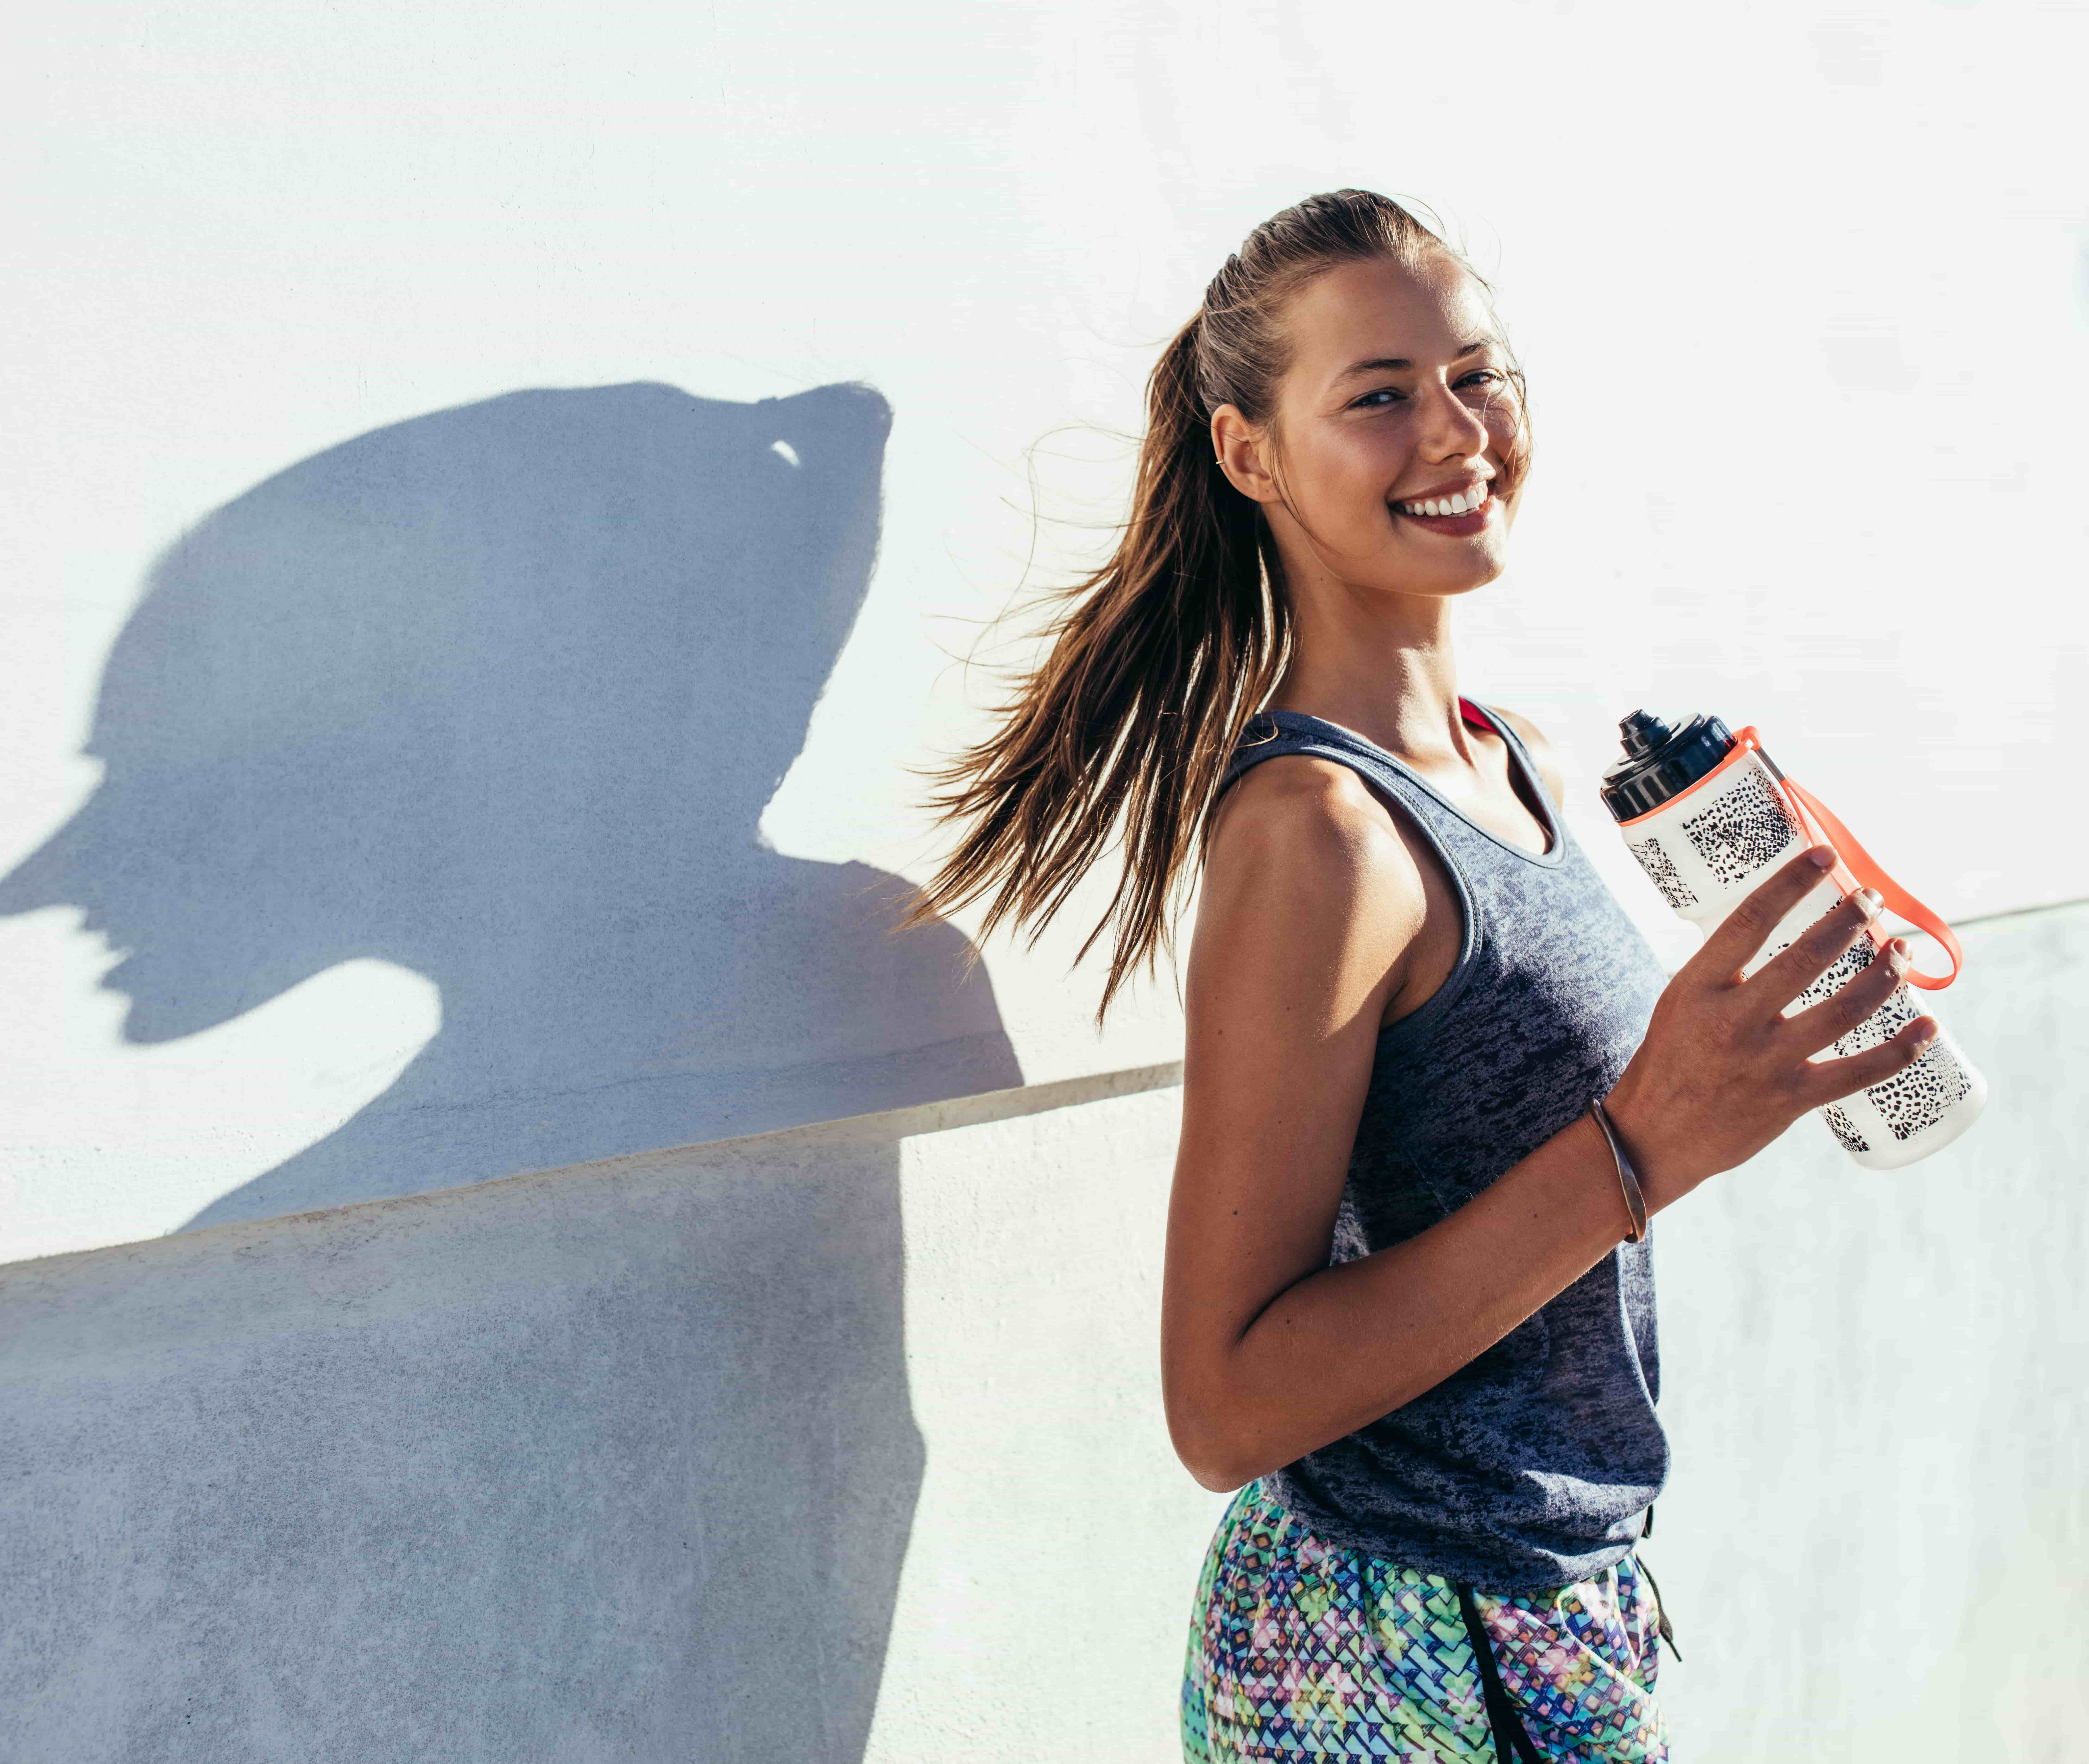 Pürblack is perfect for jogging and working out. Replenish your body with electrolytes.